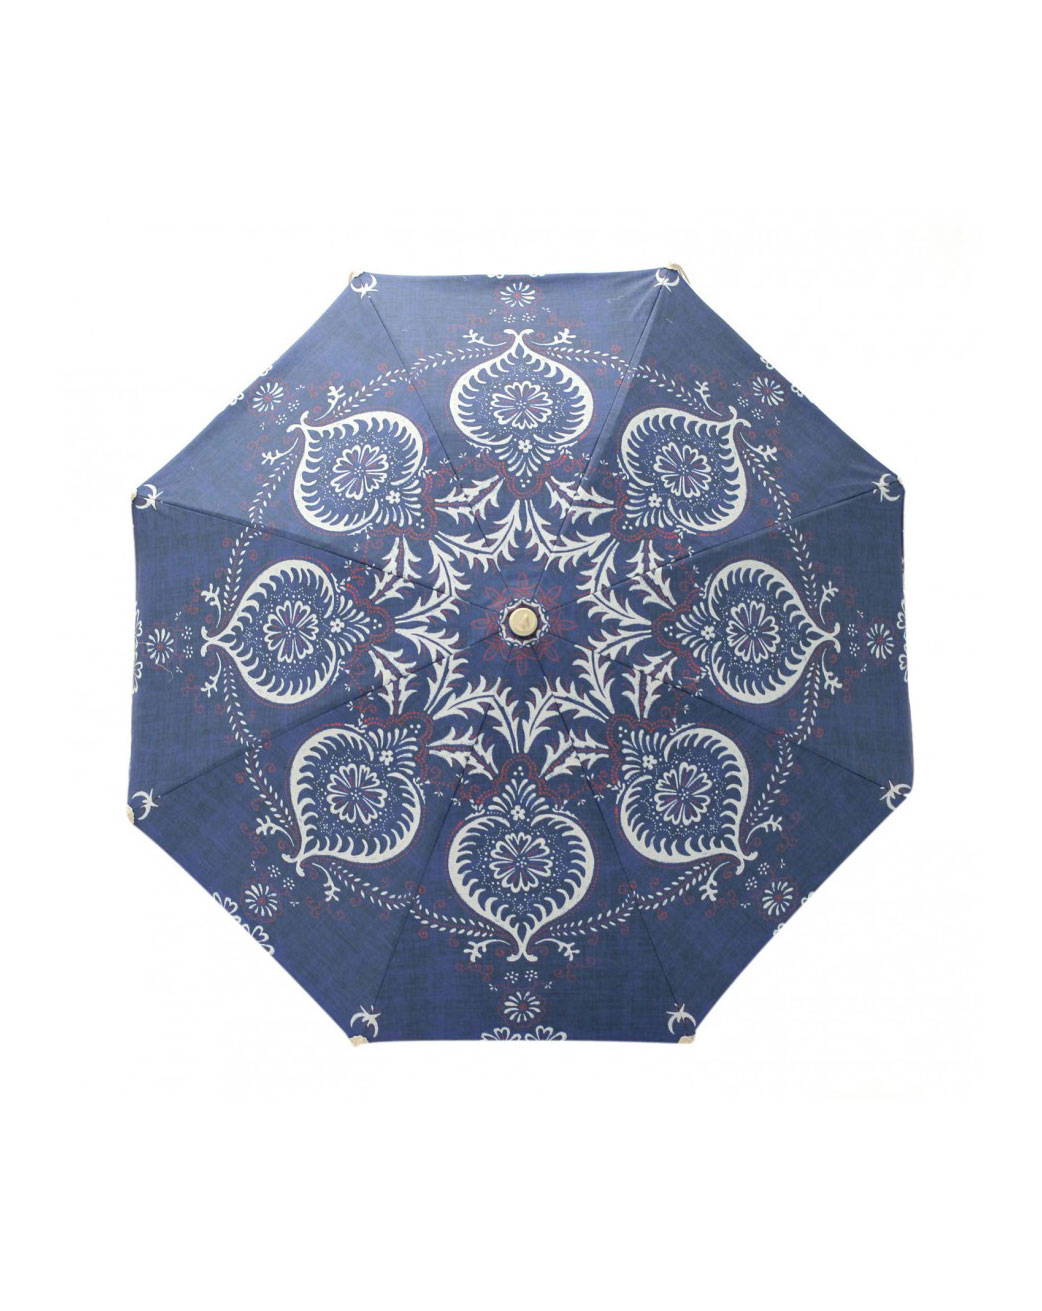 Jayson Home Fringe Umbrella in Indigo